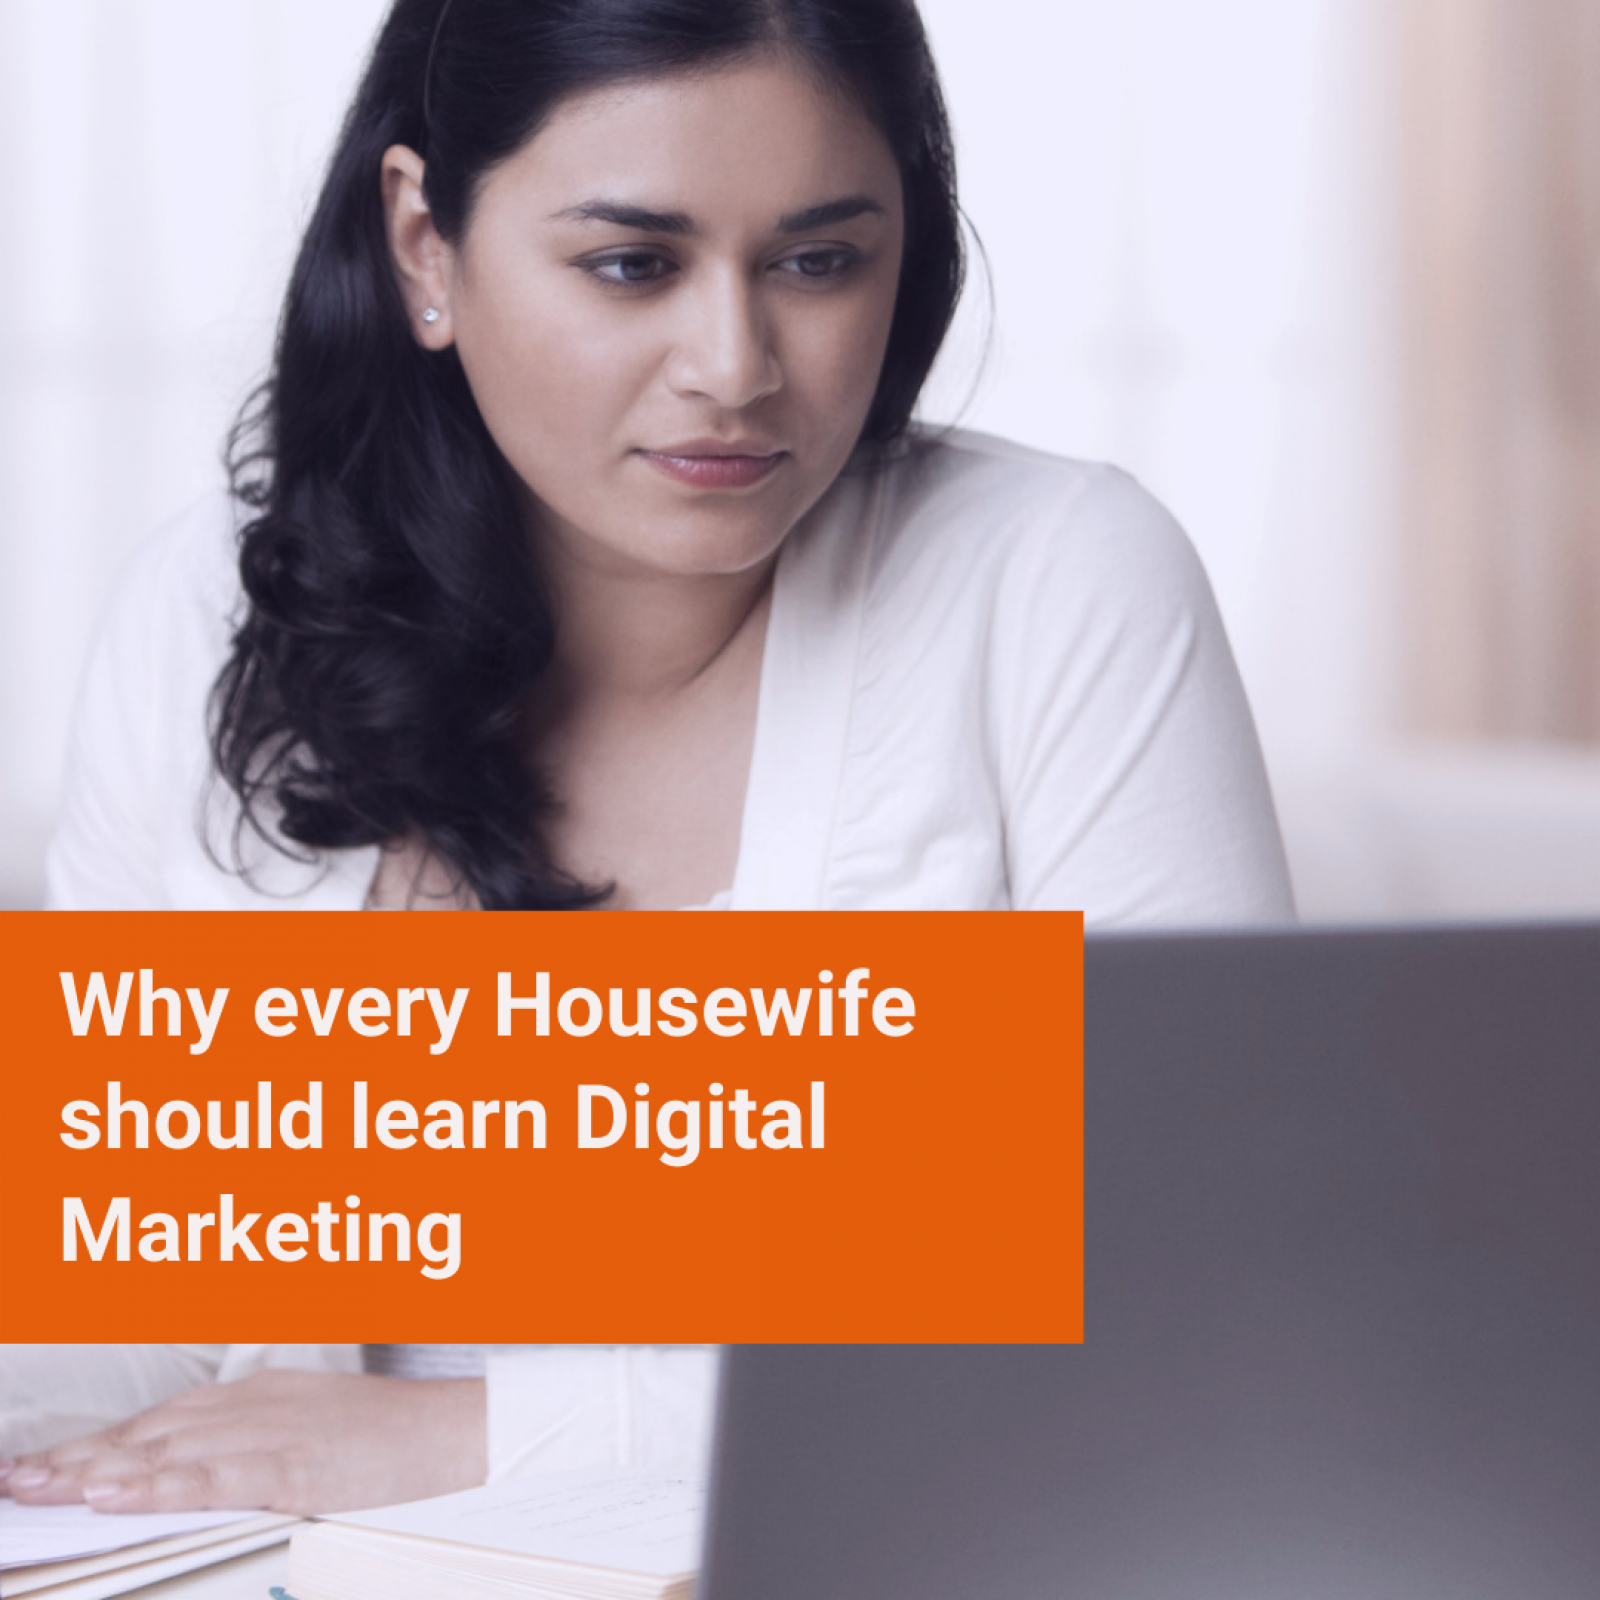 Why every Housewife should learn Digital Marketing